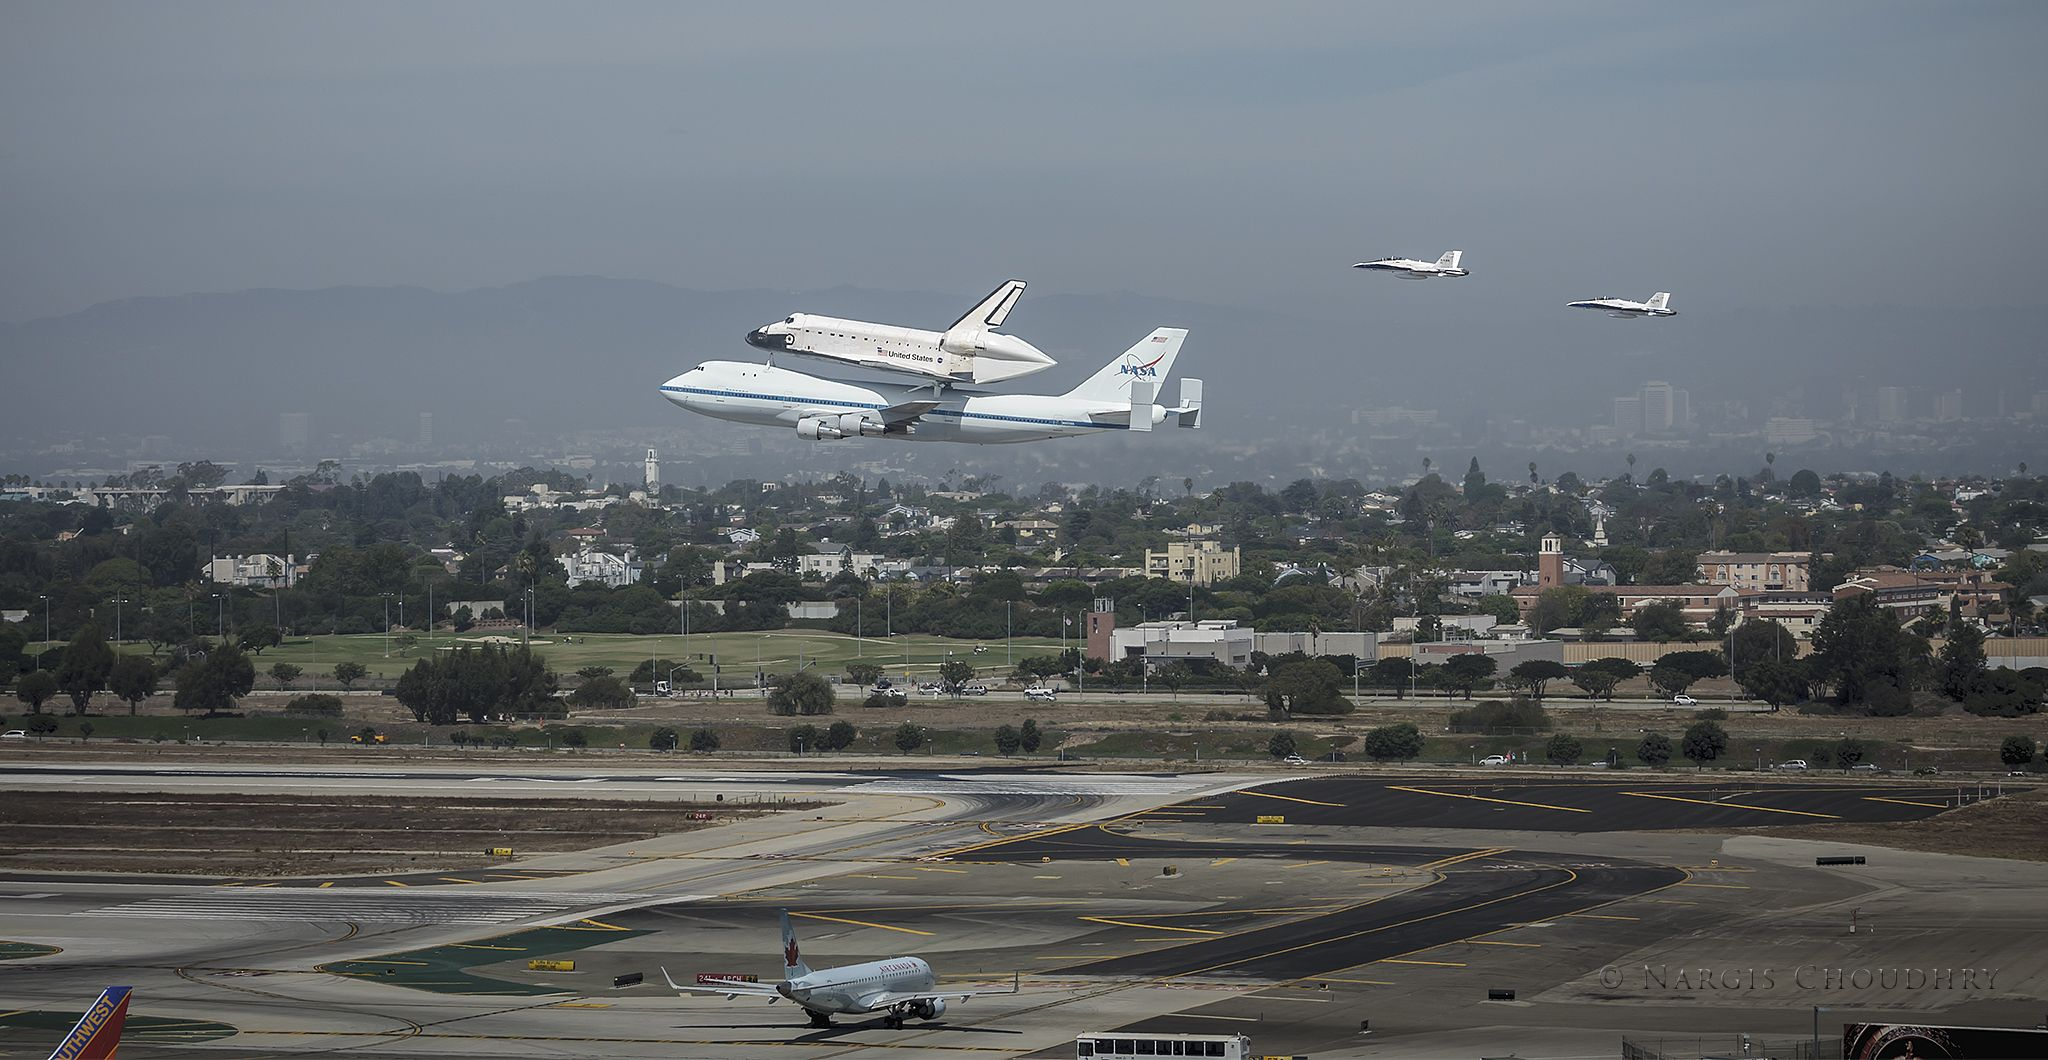 Space Shuttle Endeavour S Landing Approach At Lax Attached To A Nasa Boeing 747 Shuttle Los Angeles Airport Butterfly Species Los Angeles International Airport